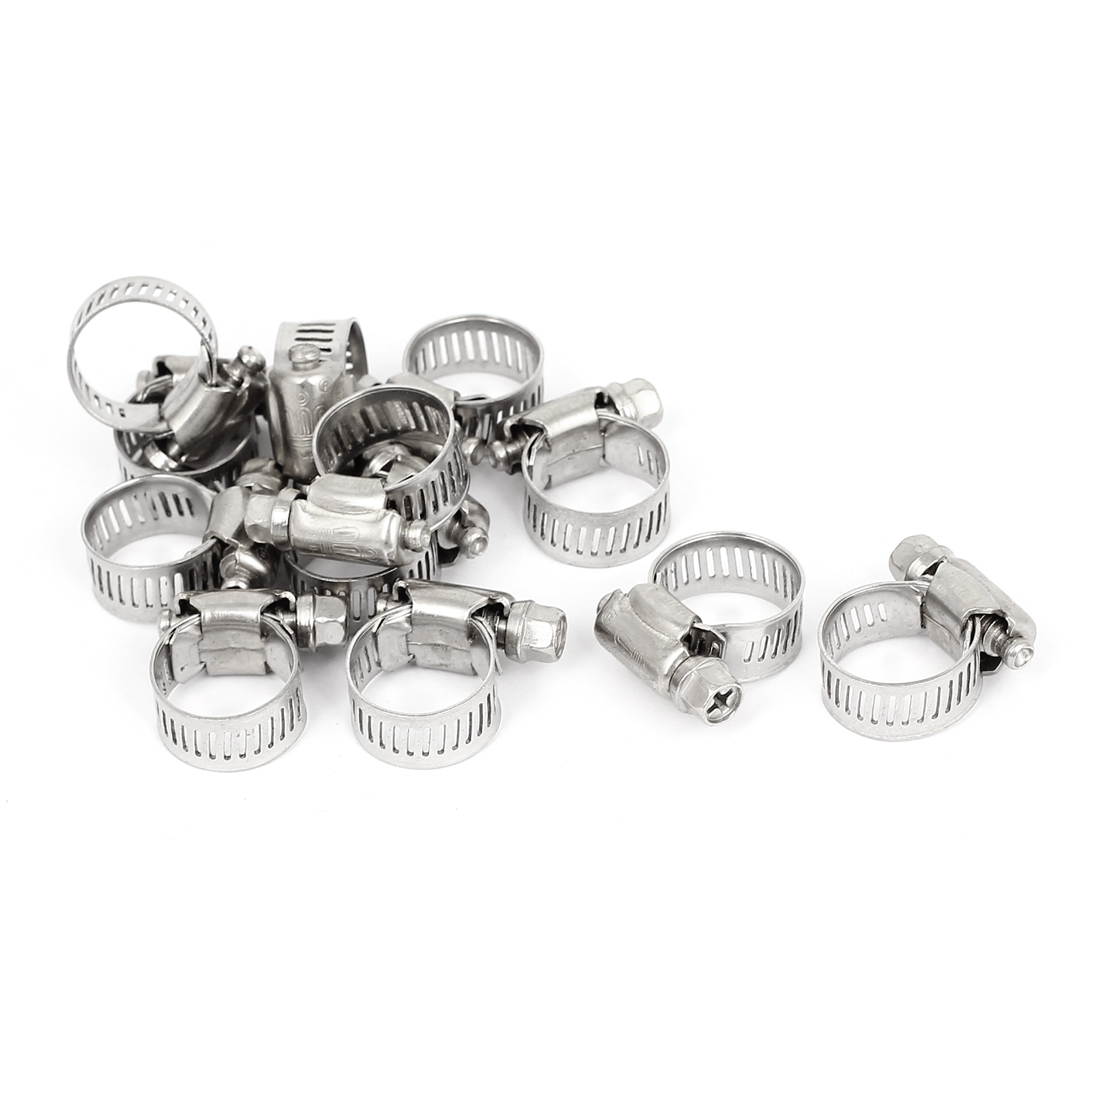 Adjustable 10-16mm Range Band Stainless Steel Wire Pipe Hose Clip Clamp 12pcs